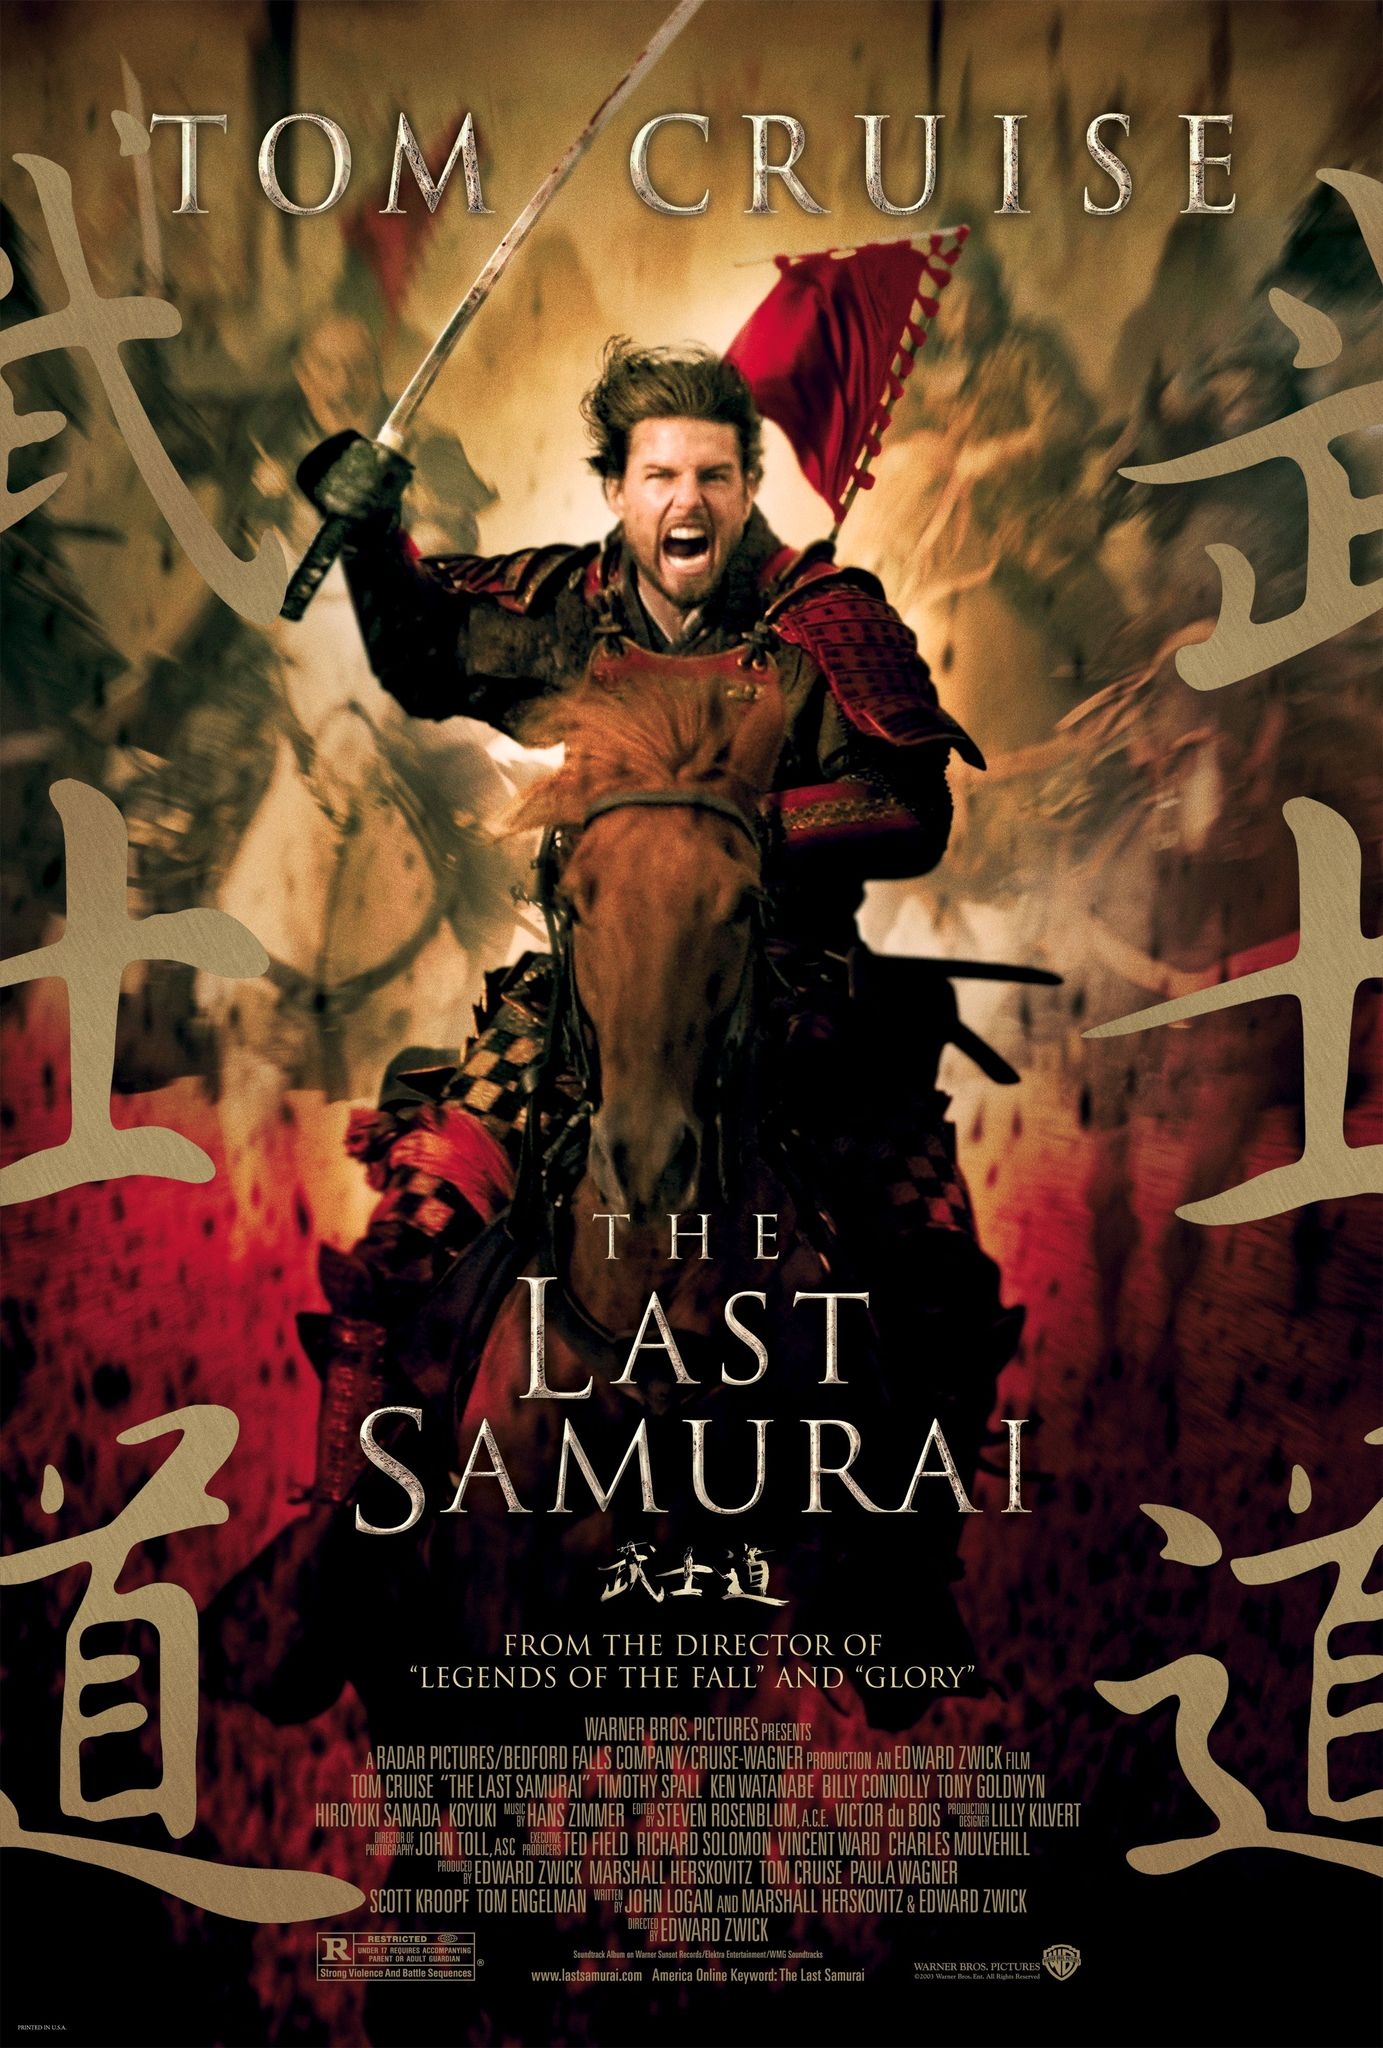 The Last Samurai - Son Samuray